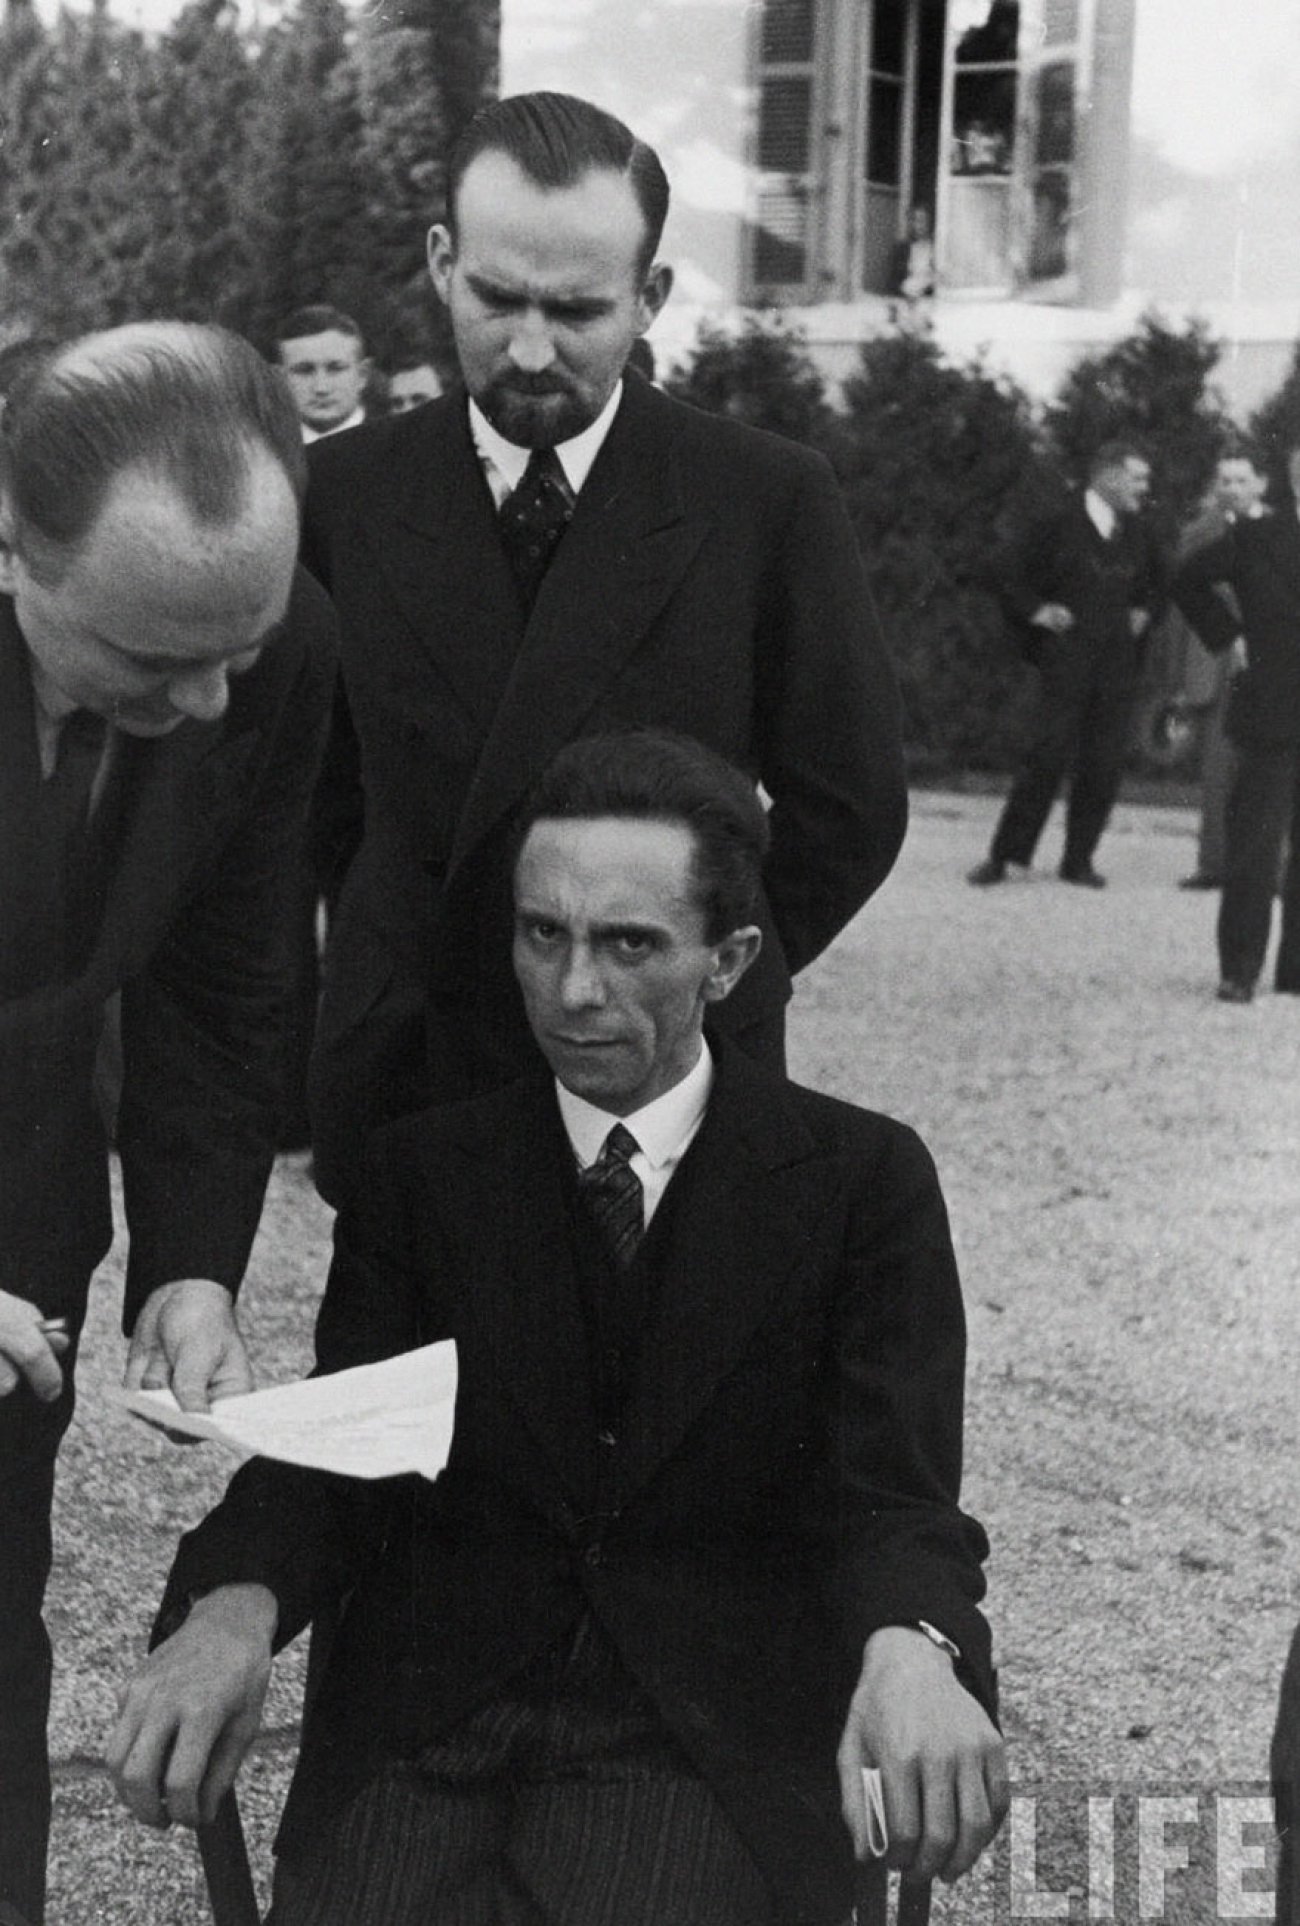 eyes-of-hate-a-photograph-of-goebbels-after-he-finds-out-his-photographer-is-jewish